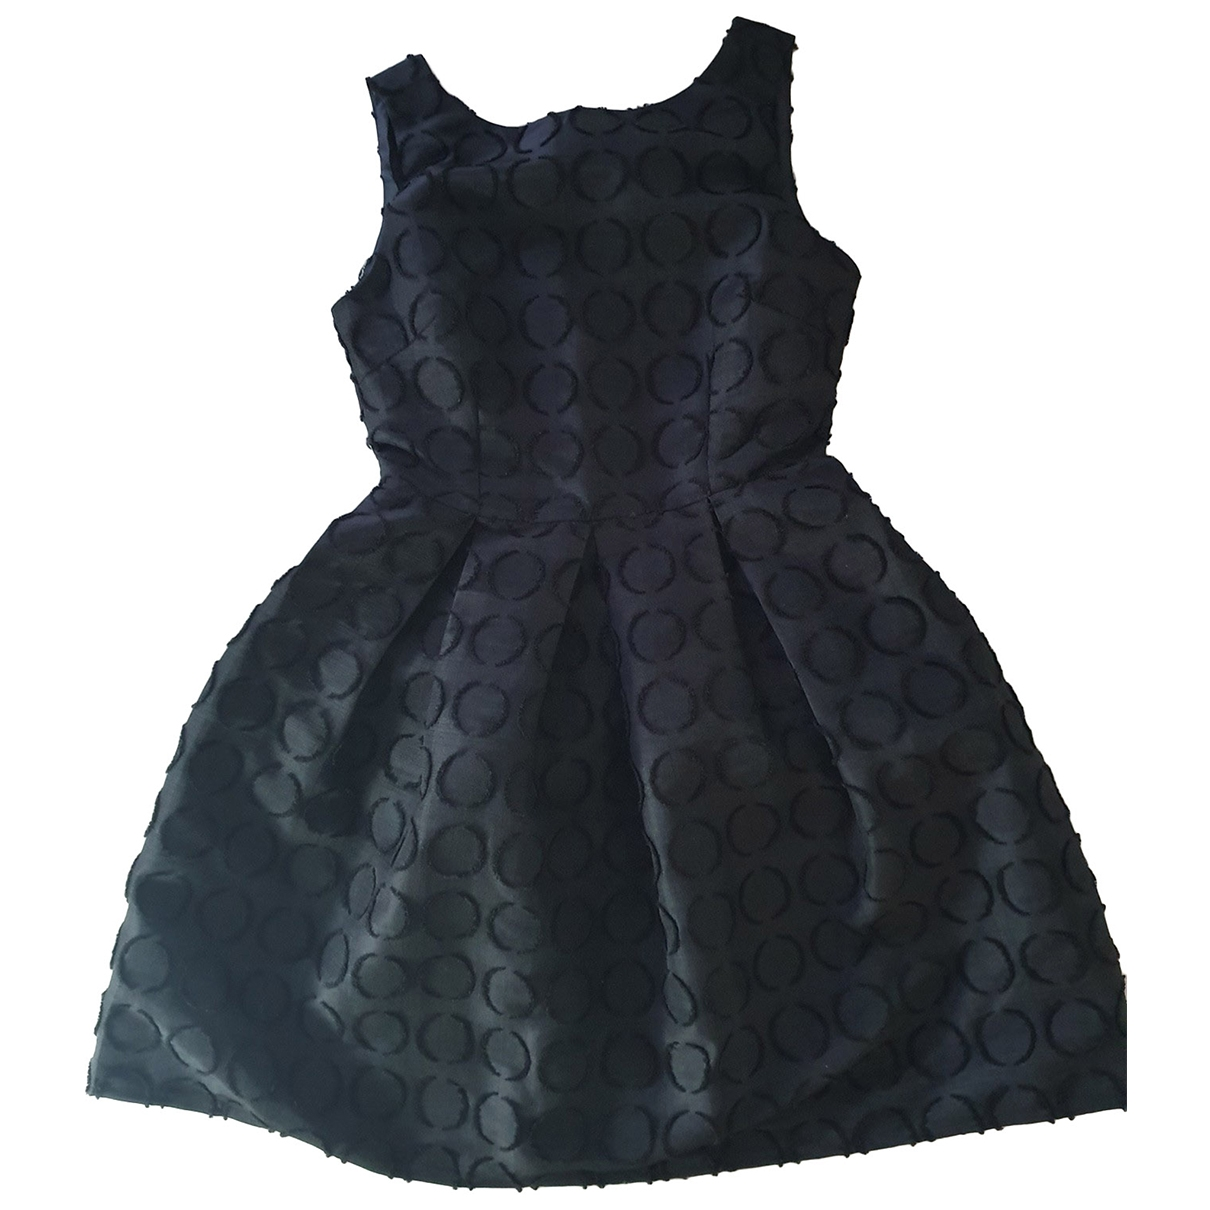 Romeo Gigli \N Black dress for Women S International